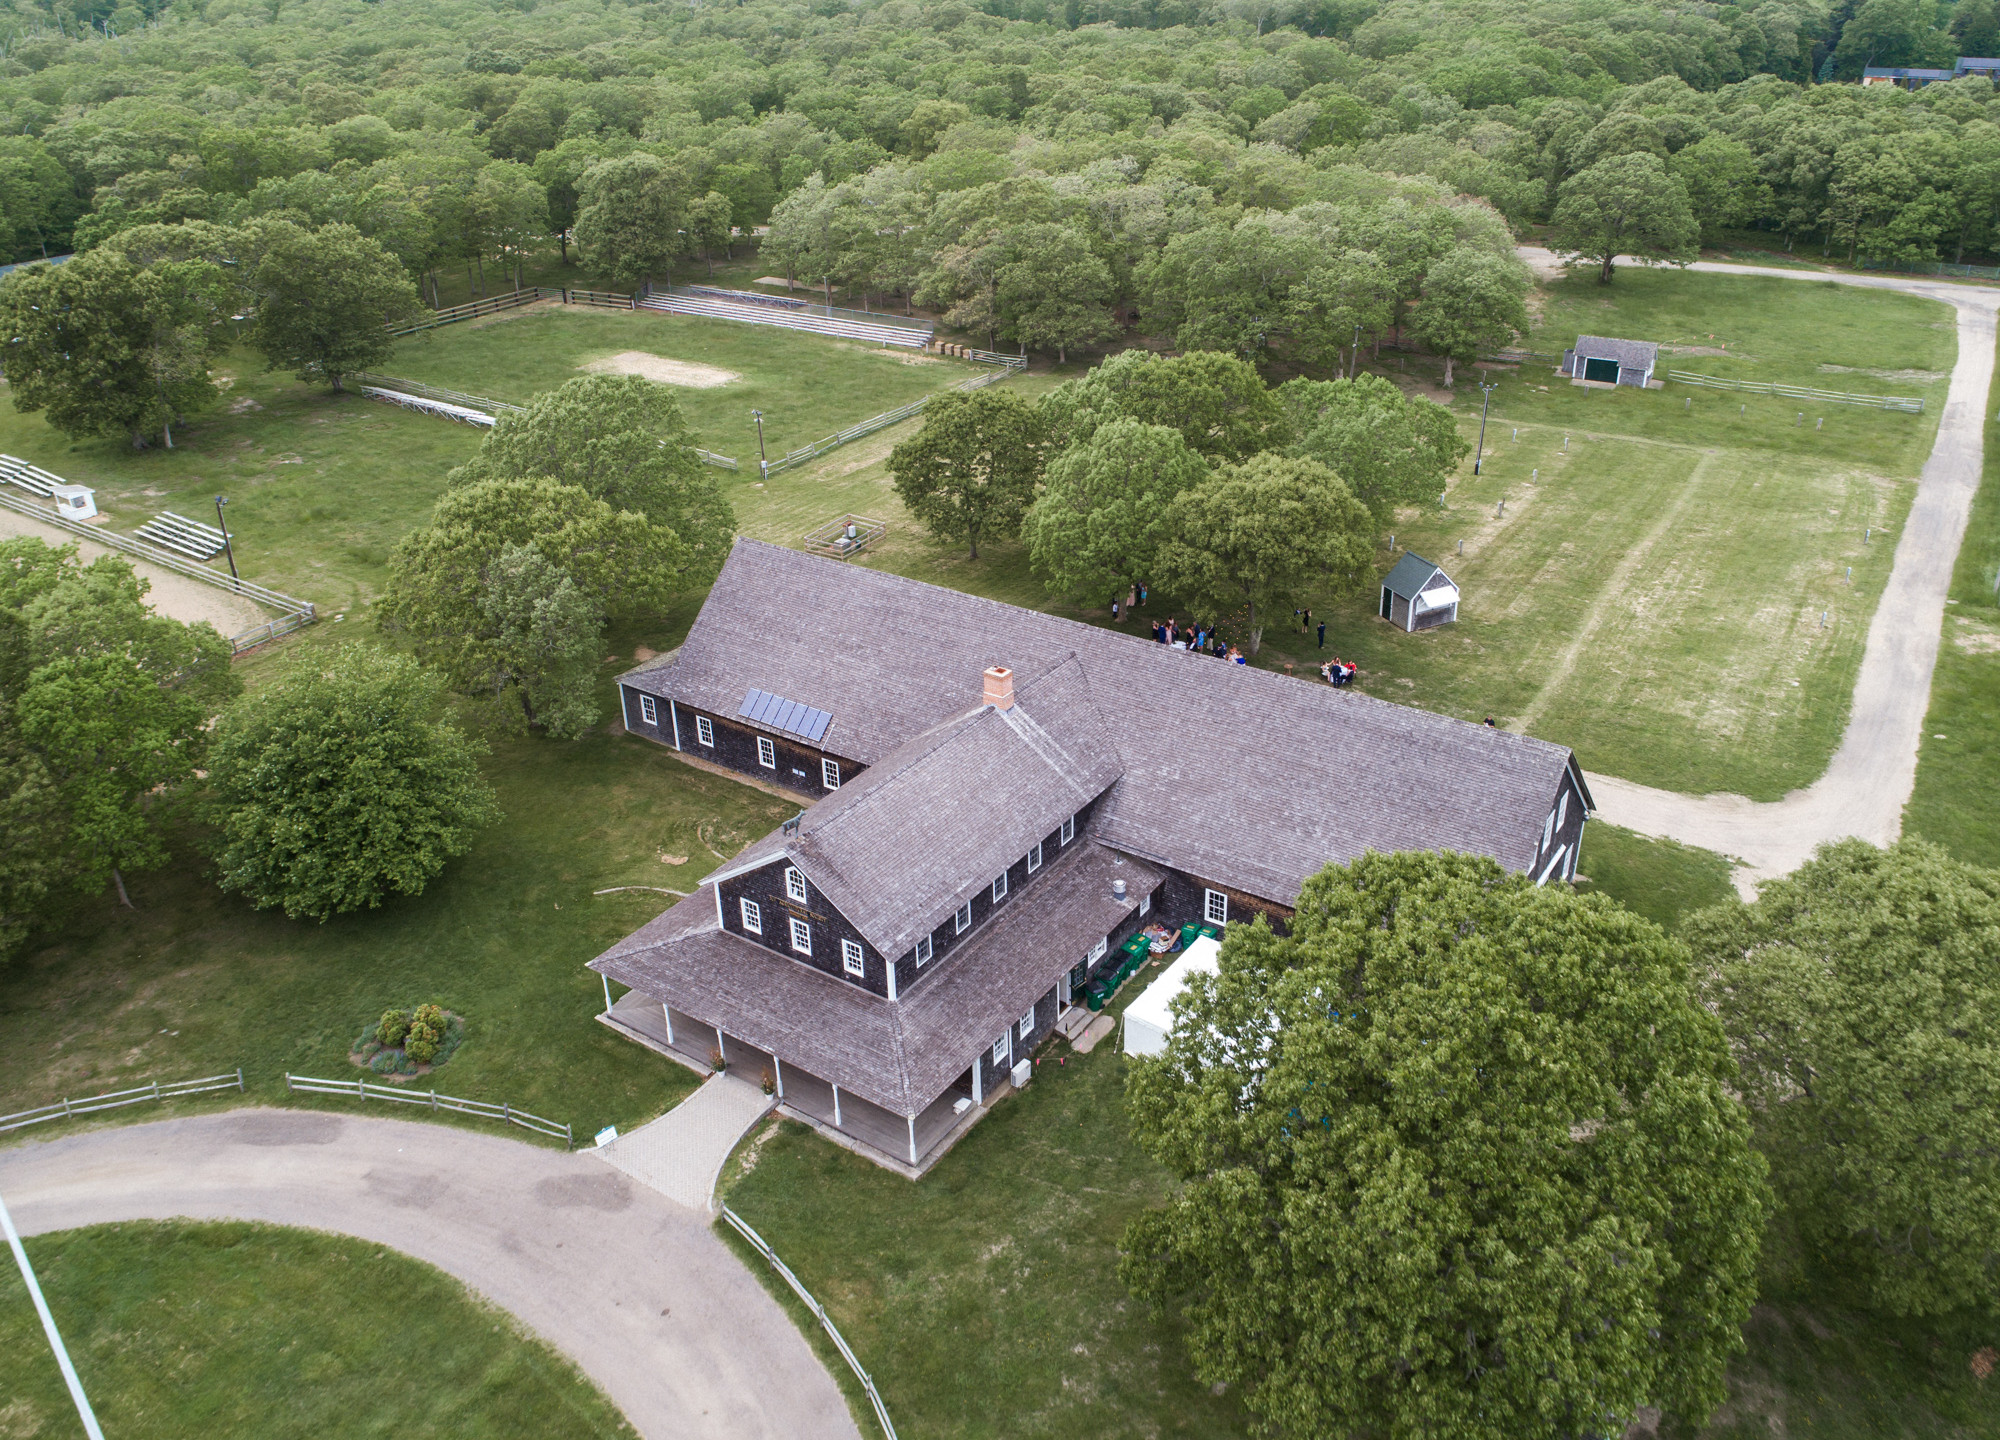 Drone photo of the Martha's Vineyard Agricultural Hall in West Tisbury martha's vineyard wedding venues photo by David Welch Photography